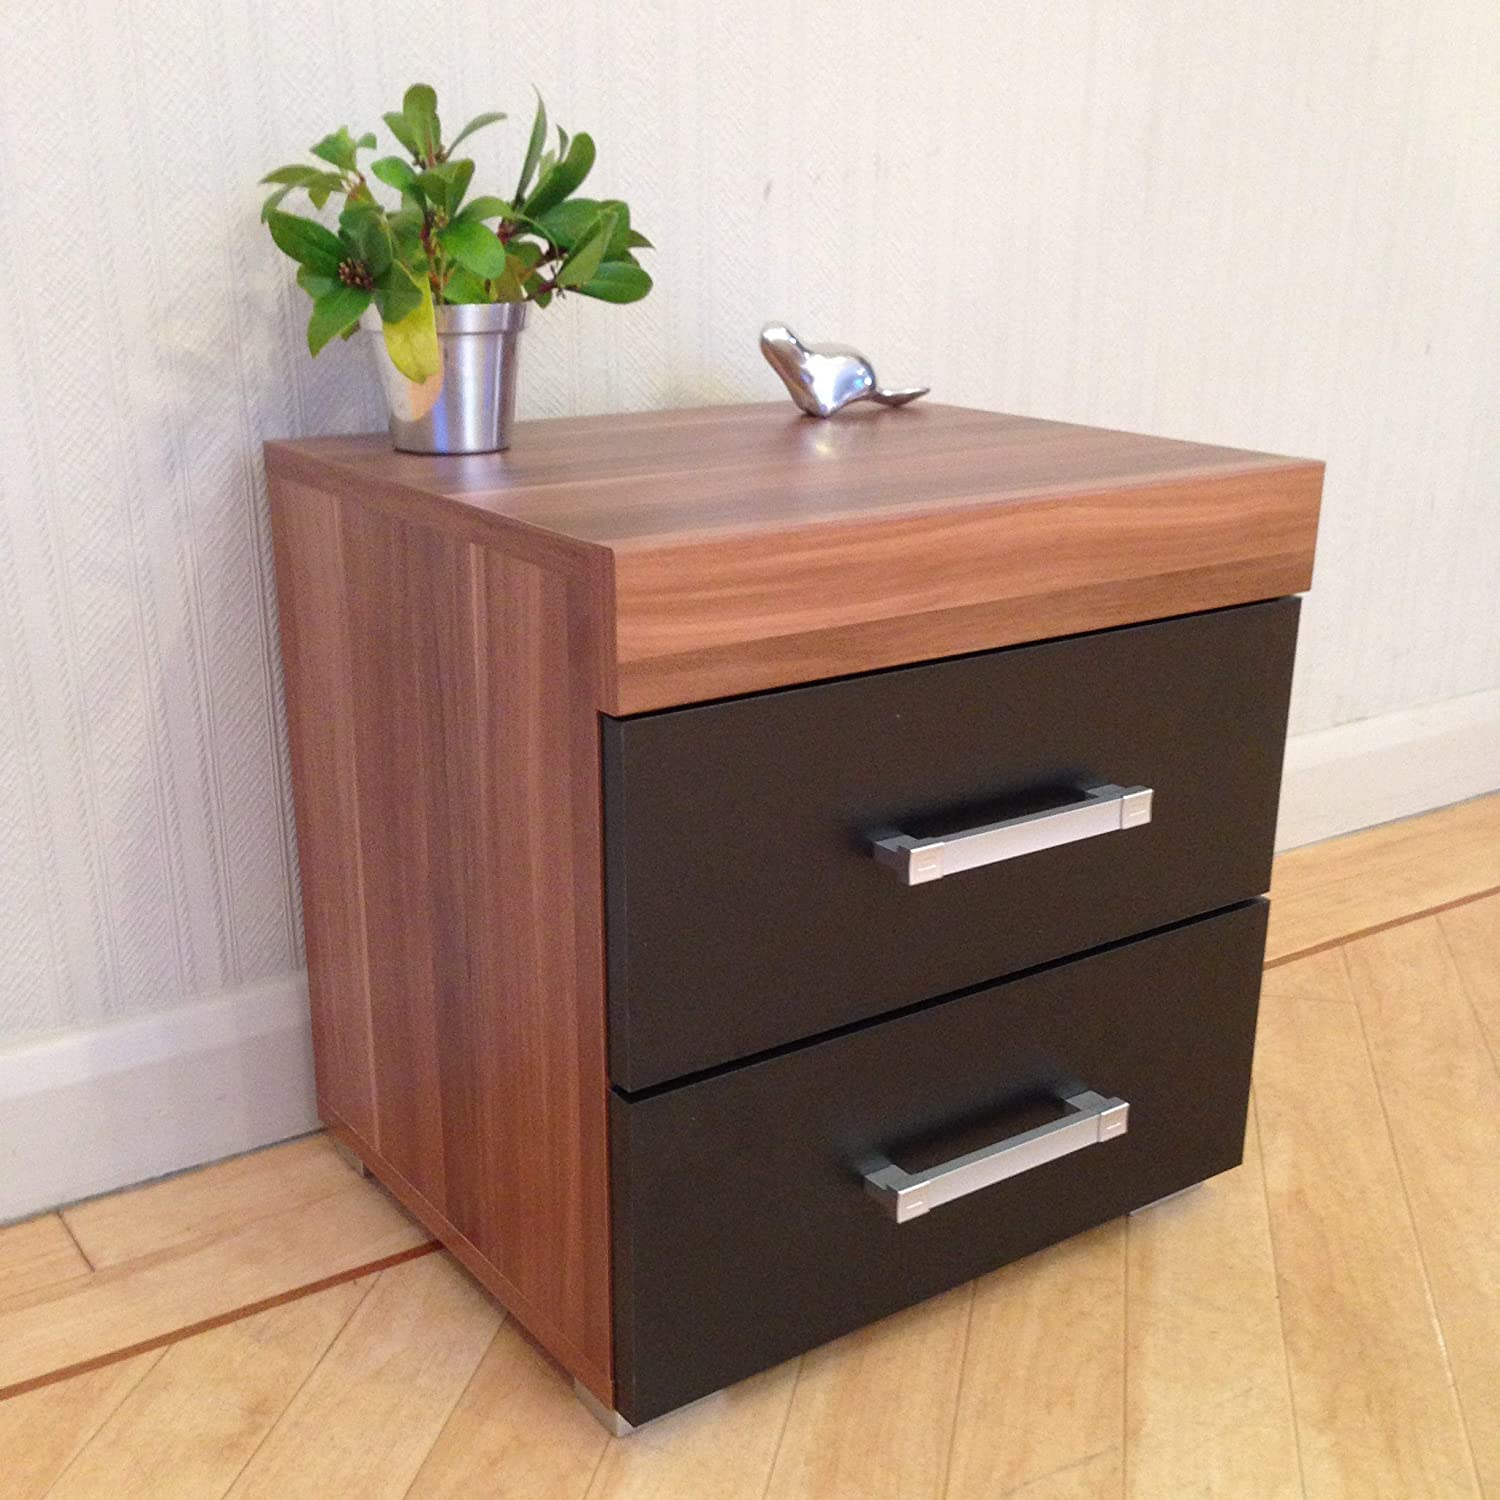 DRP Trading 2 Drawer Black & Walnut Bedside Cabinet/Table Bedroom Furniture